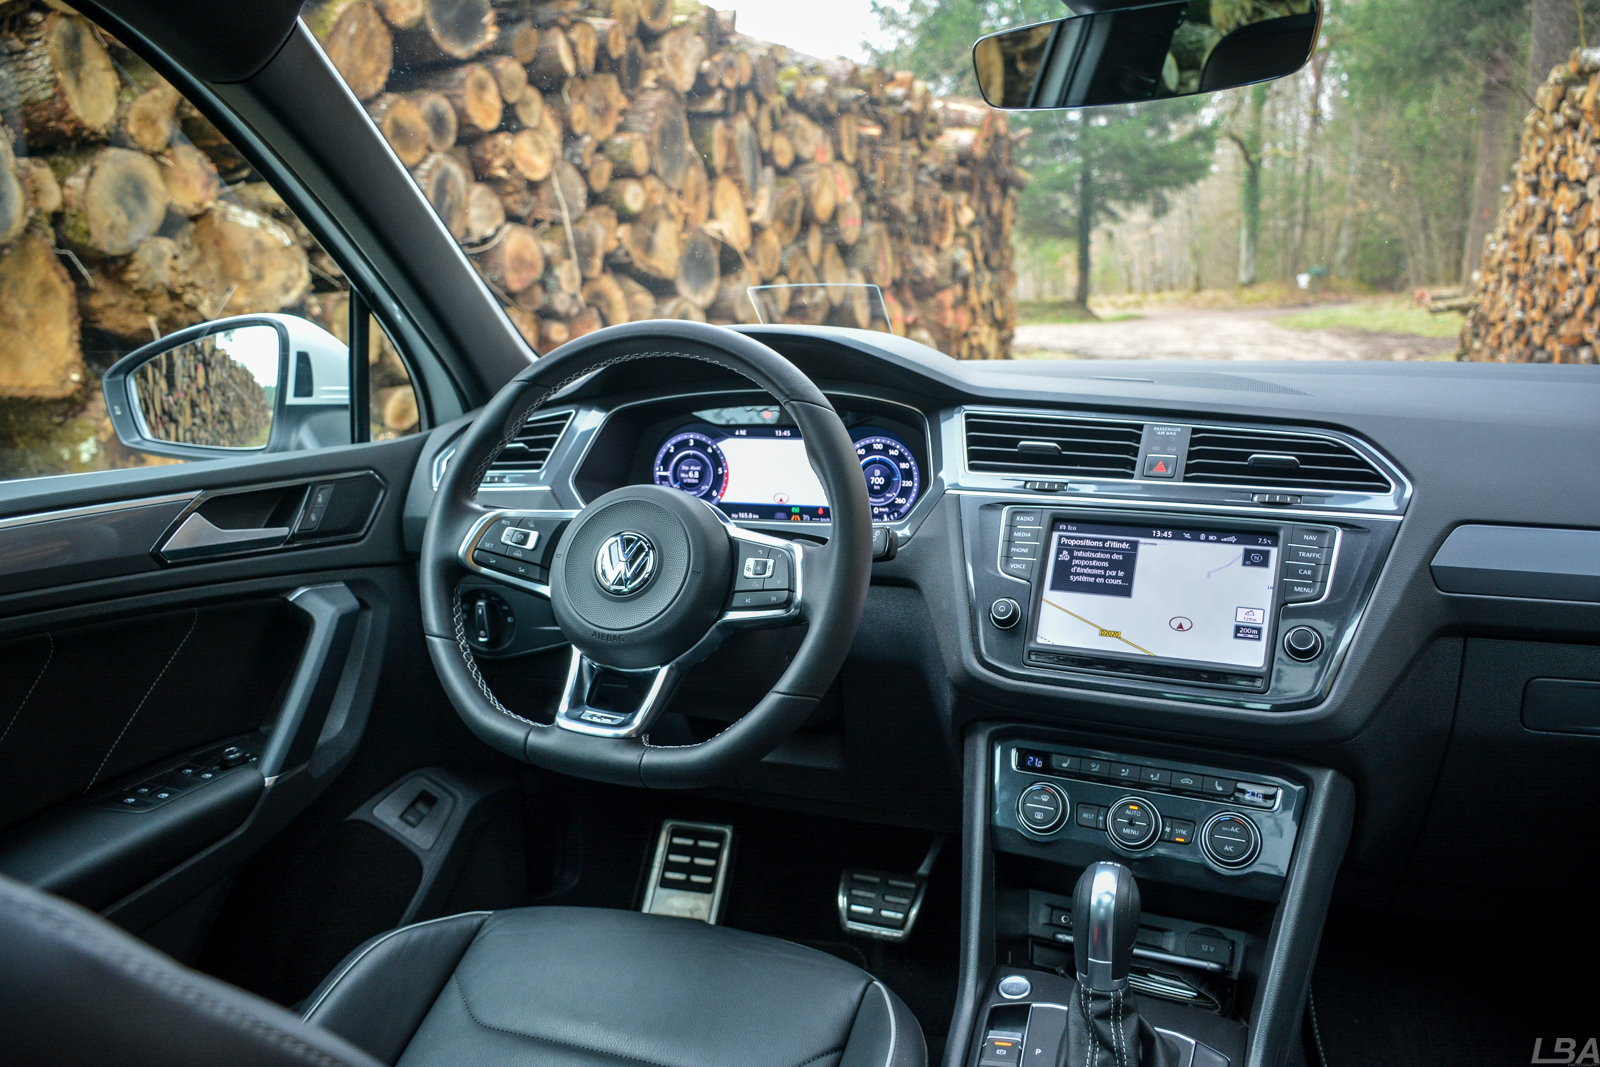 essai volkswagen tiguan bitdi 240ch r line le billet auto test drive. Black Bedroom Furniture Sets. Home Design Ideas